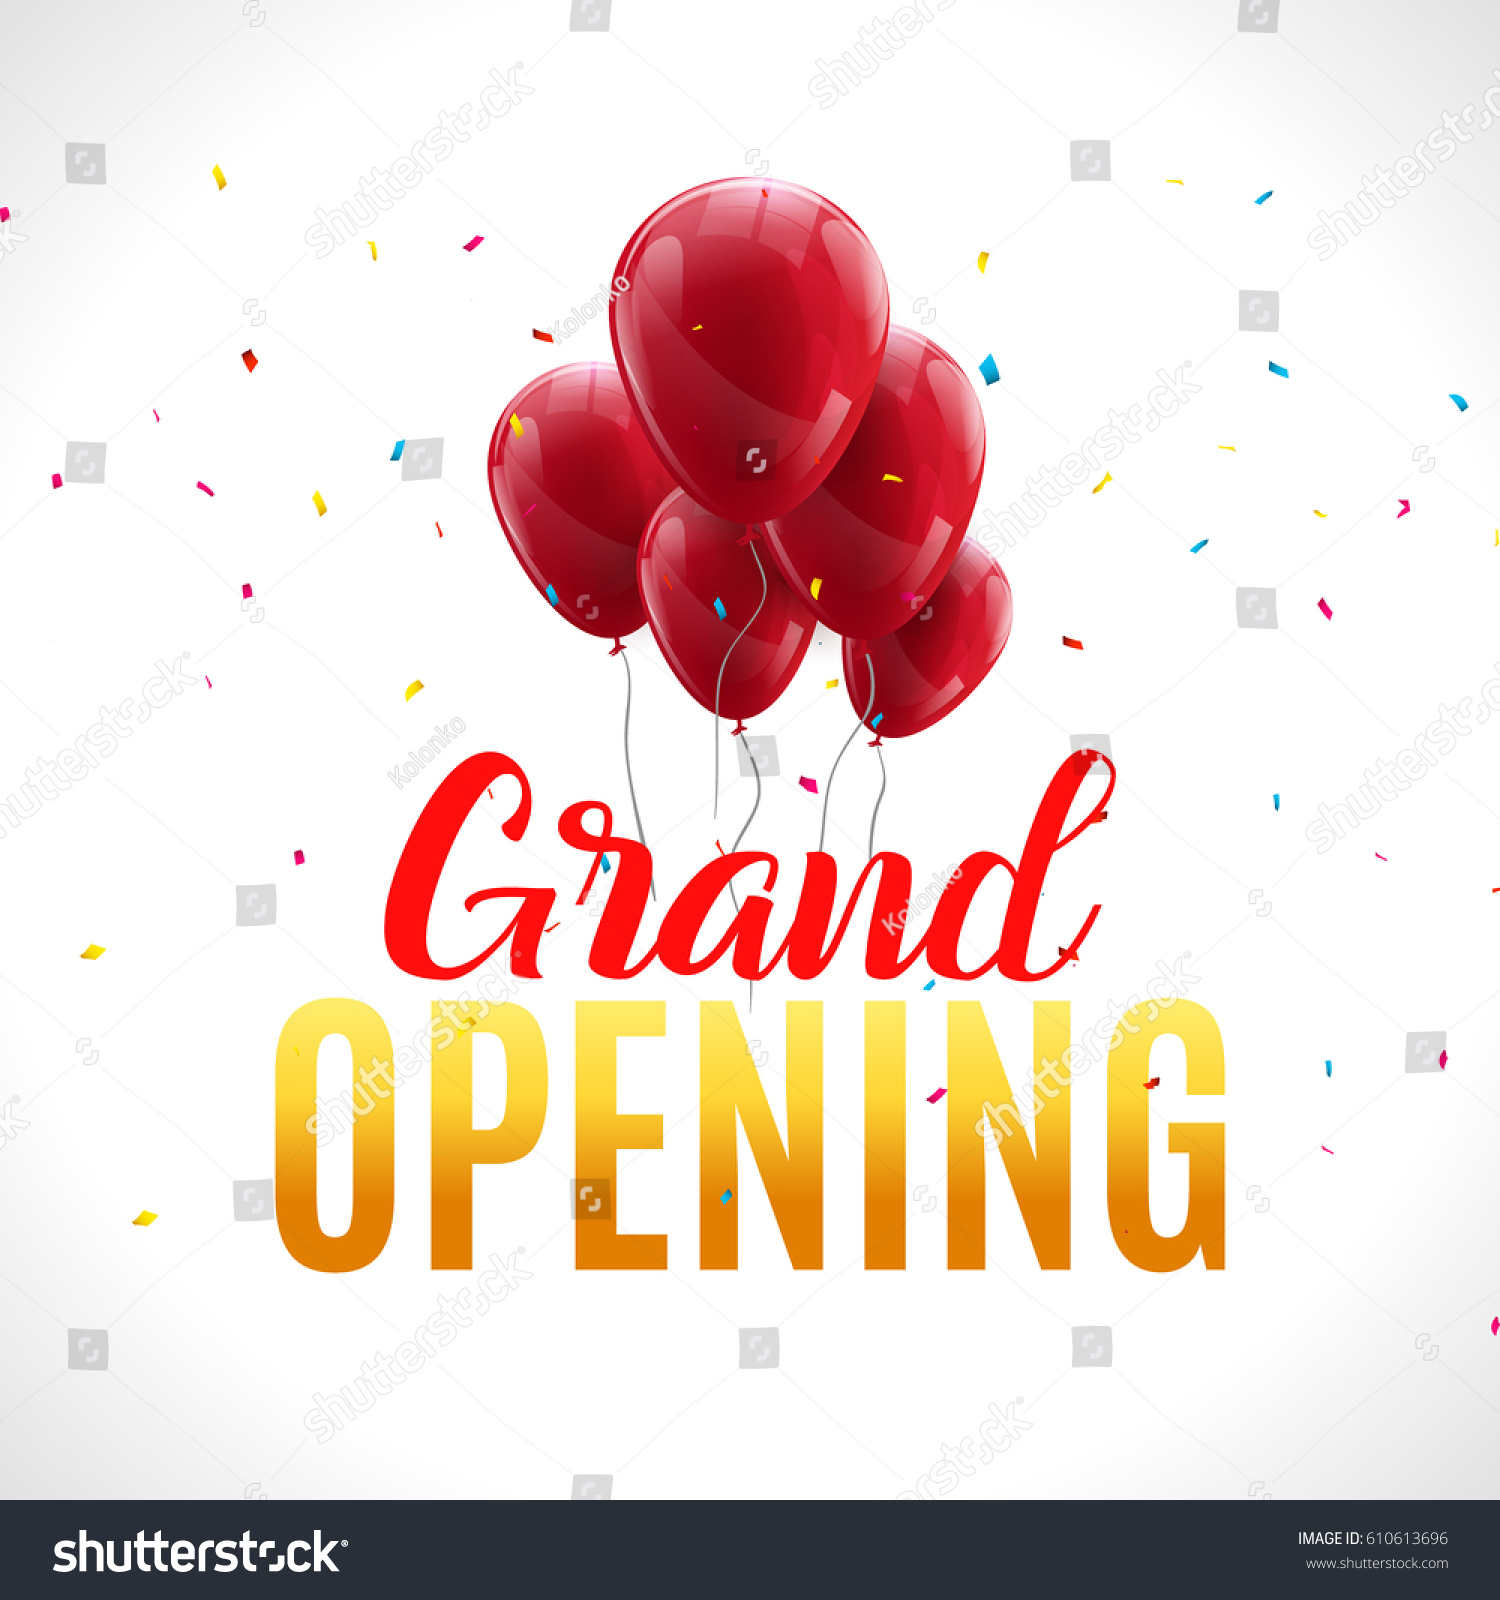 Similar Images Stock Photos Vectors Of Grand Opening Event